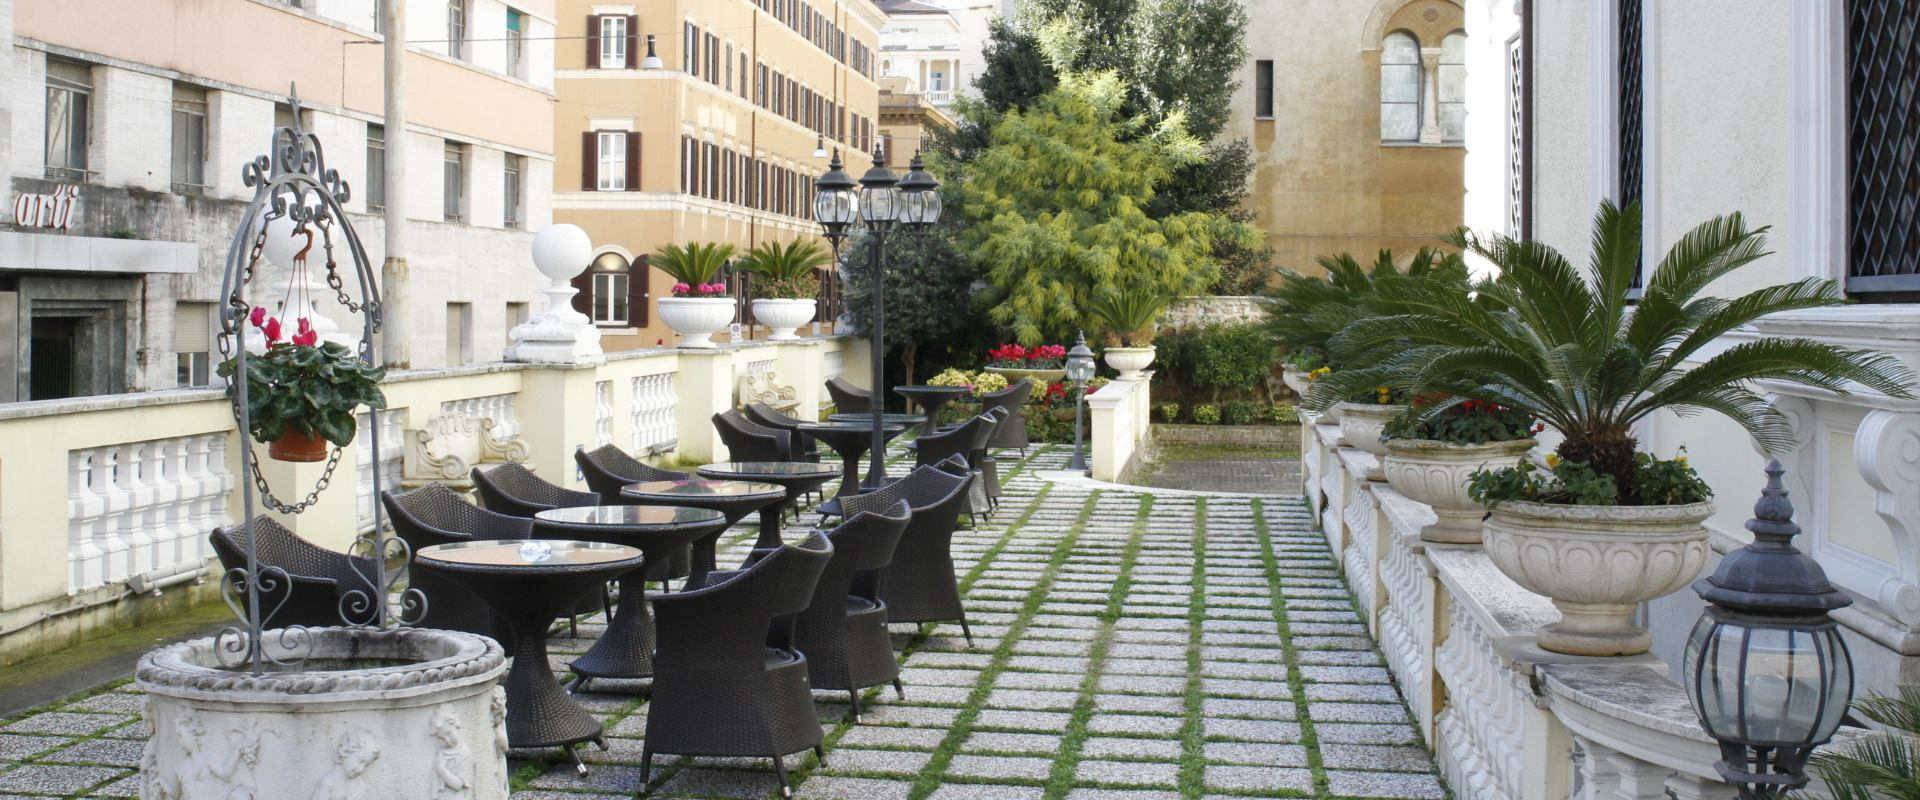 An experience you simply cannot miss villa pinciana hotel rome